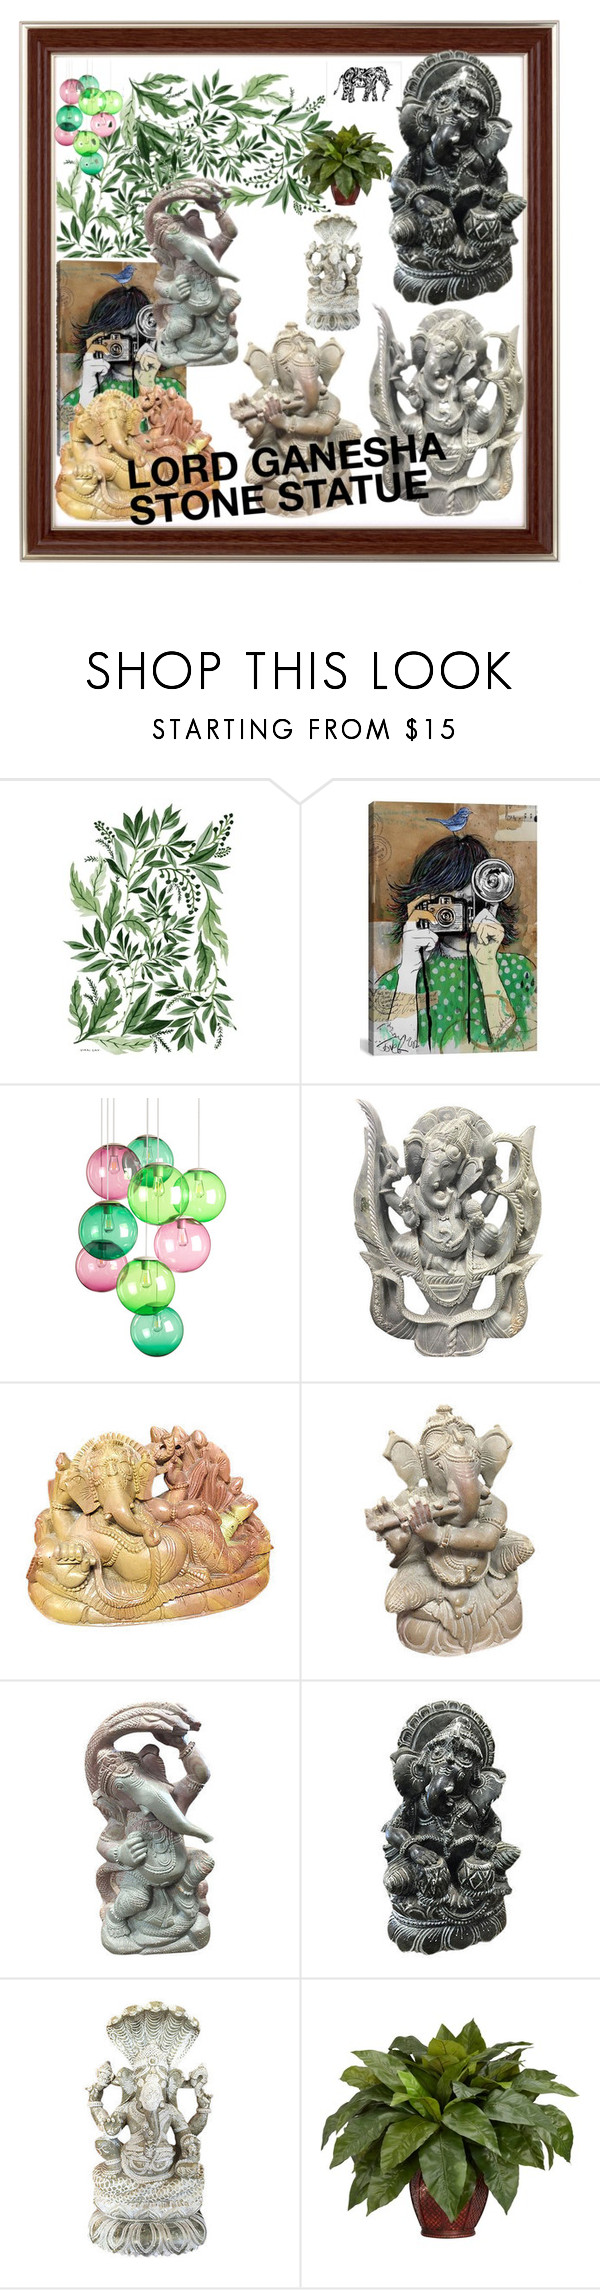 """LORD GANESHA STONE STATUE"" by era-chandok ❤ liked on Polyvore featuring interior, interiors, interior design, home, home decor, interior decorating, iCanvas, Fatboy, Mikasa and Nearly Natural"